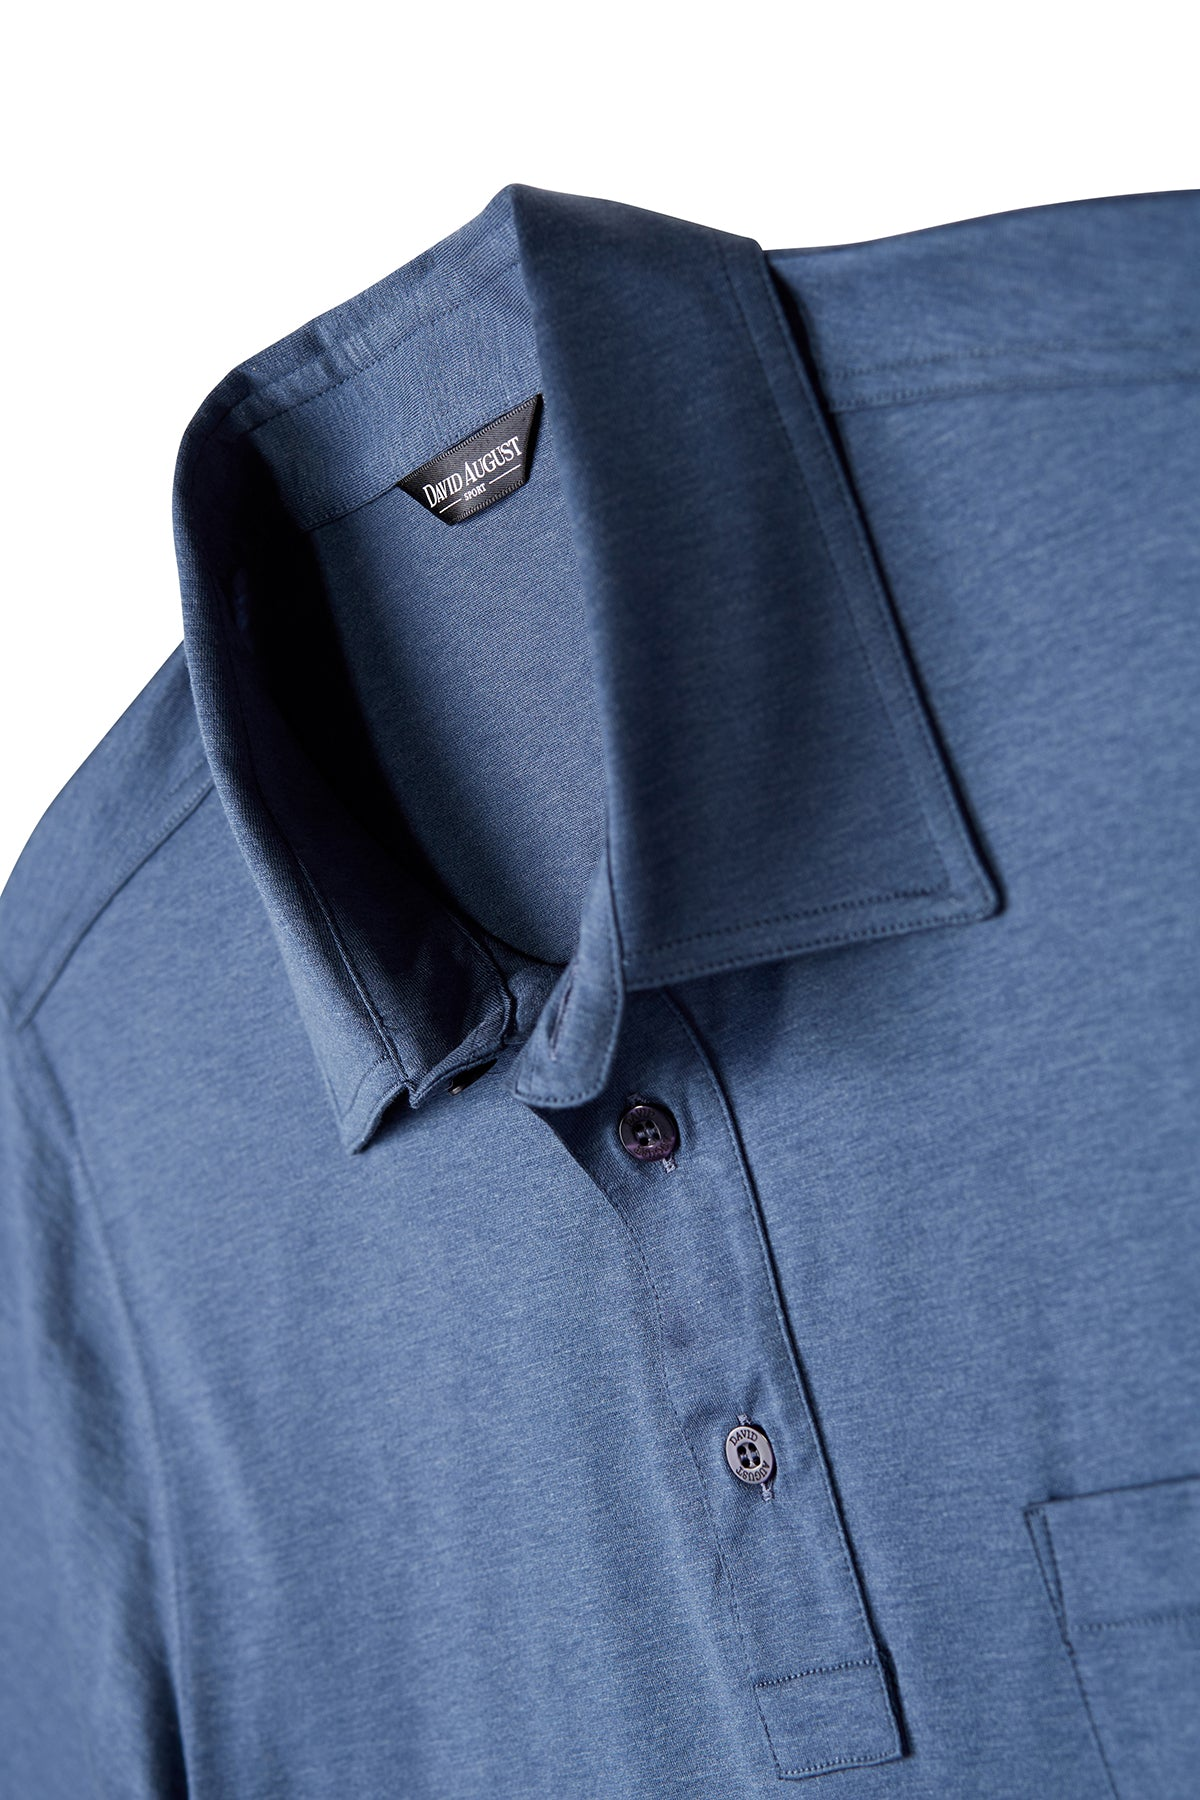 Mercerized Cotton Heather Blue Polo